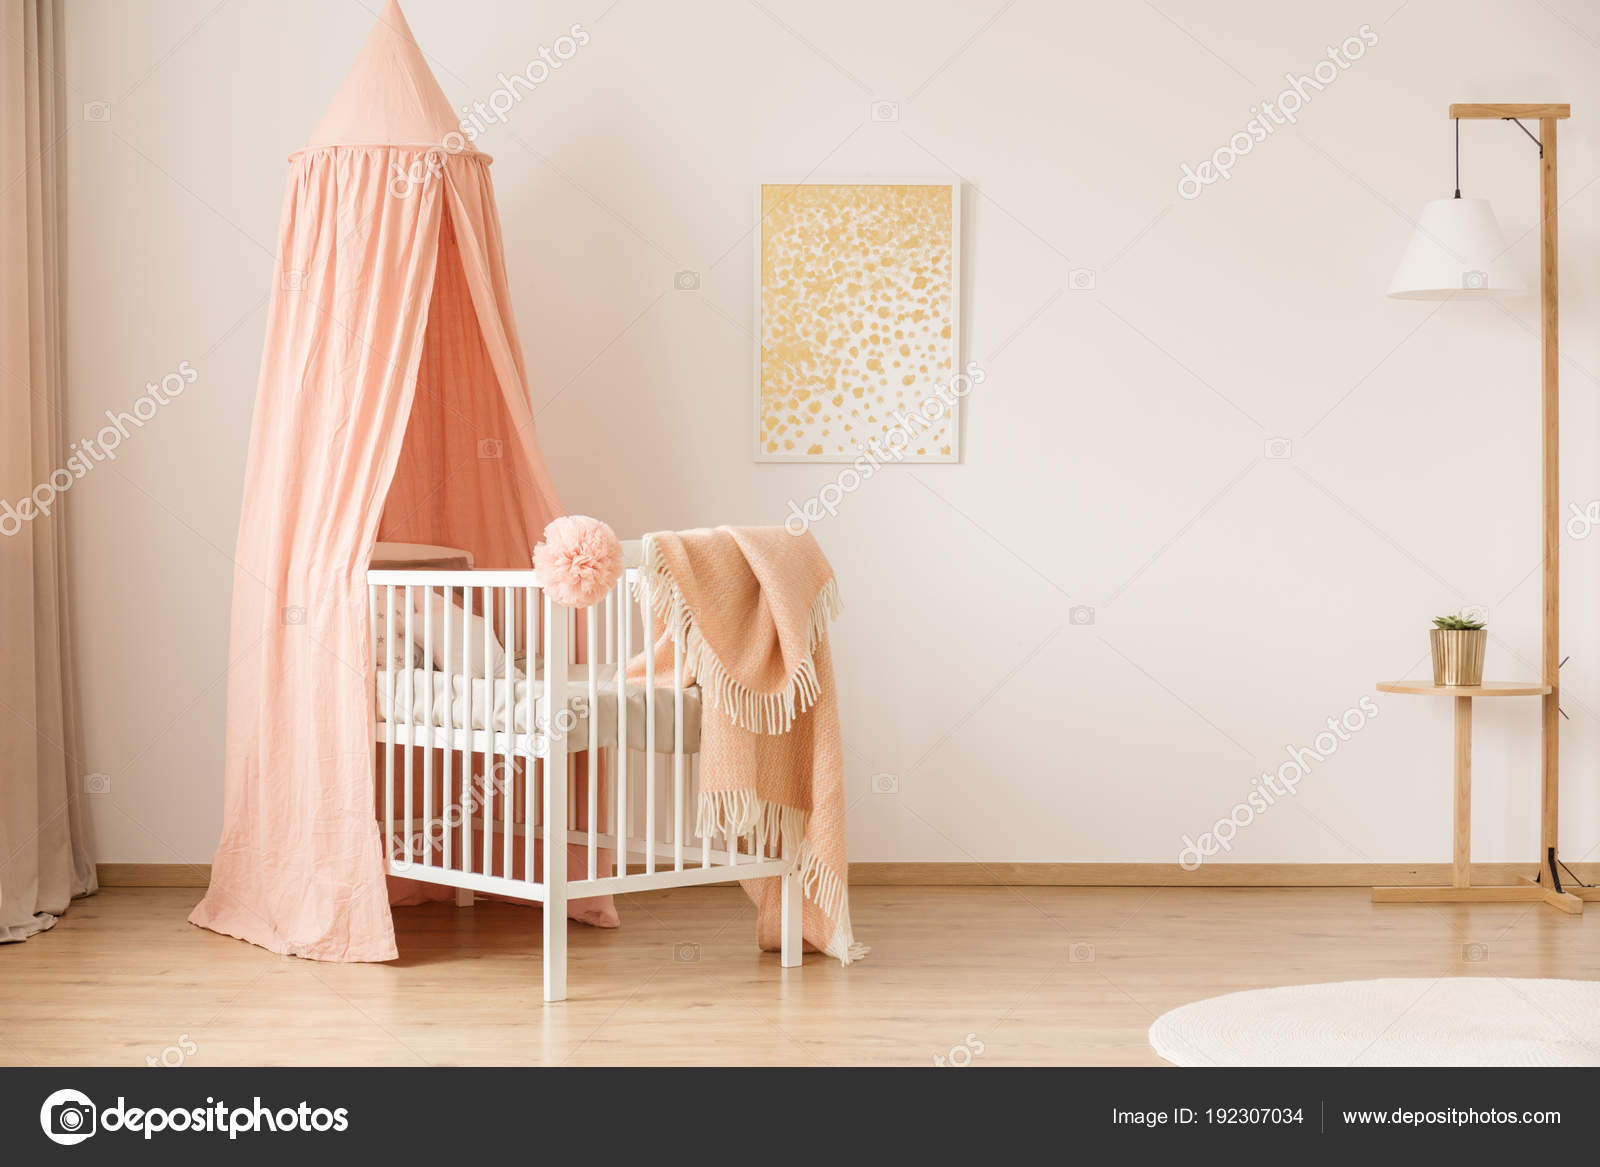 Abstract Painting On A White Wall Of A Minimalist Nursery Interior With A  Simple Crib, Peach Pink Canopy And A Floor Lamp U2014 Photo By Photographee.eu